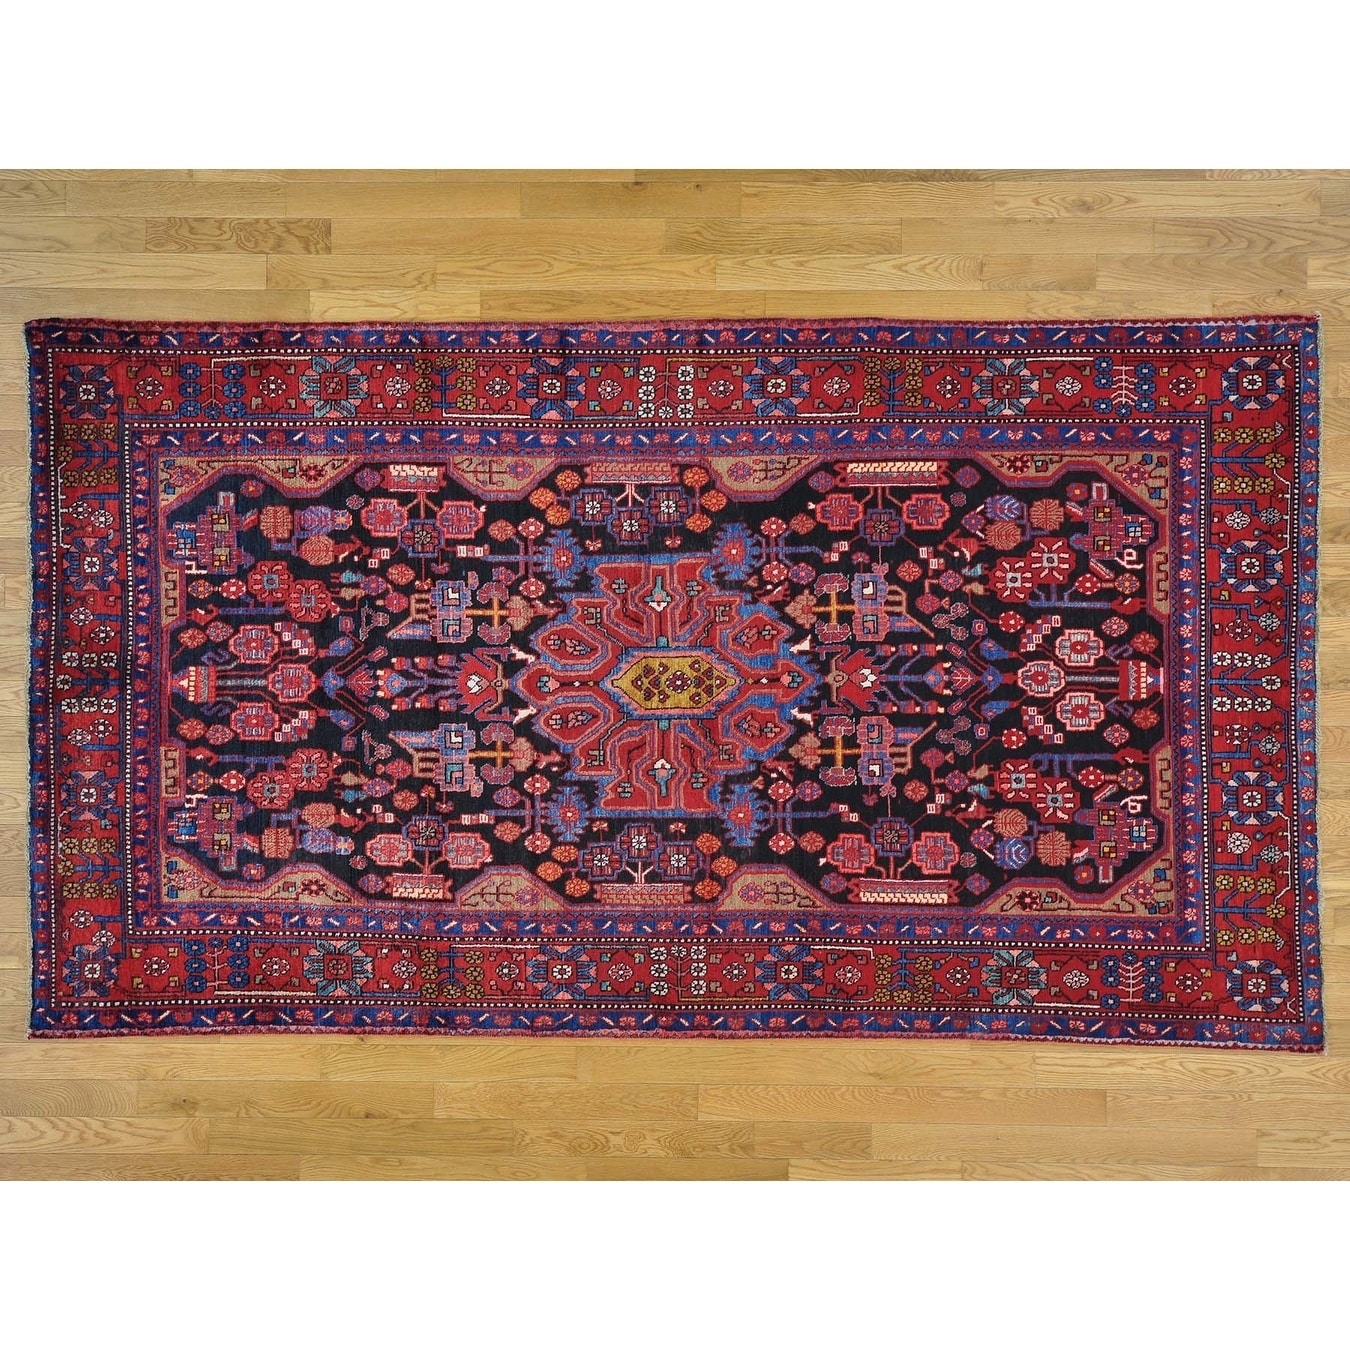 Hand Knotted Black Persian with Wool Oriental Rug - 5'5 x 9'8